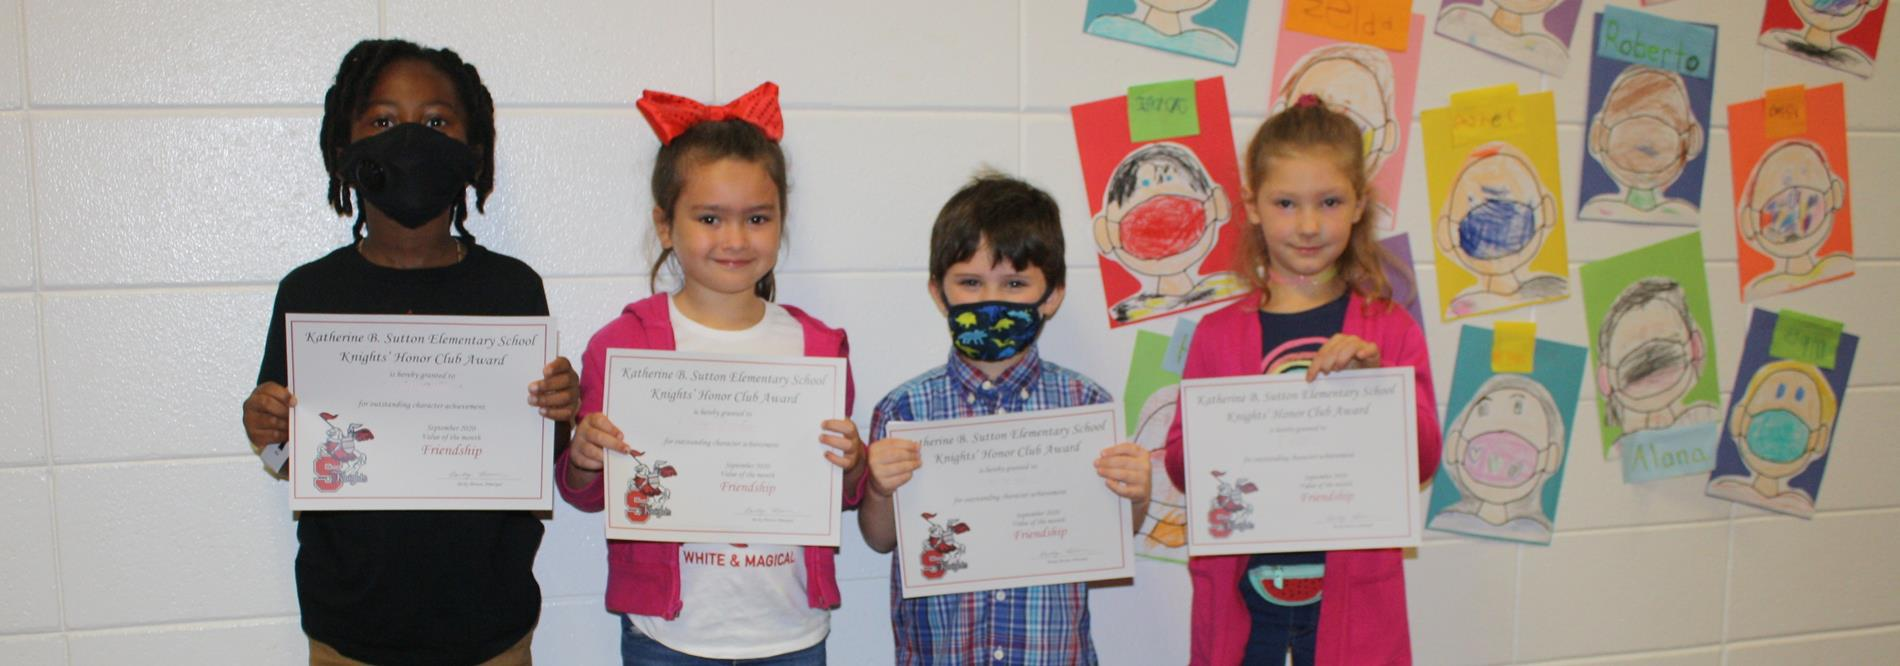 Students hold their certificates for Knights Honor Club